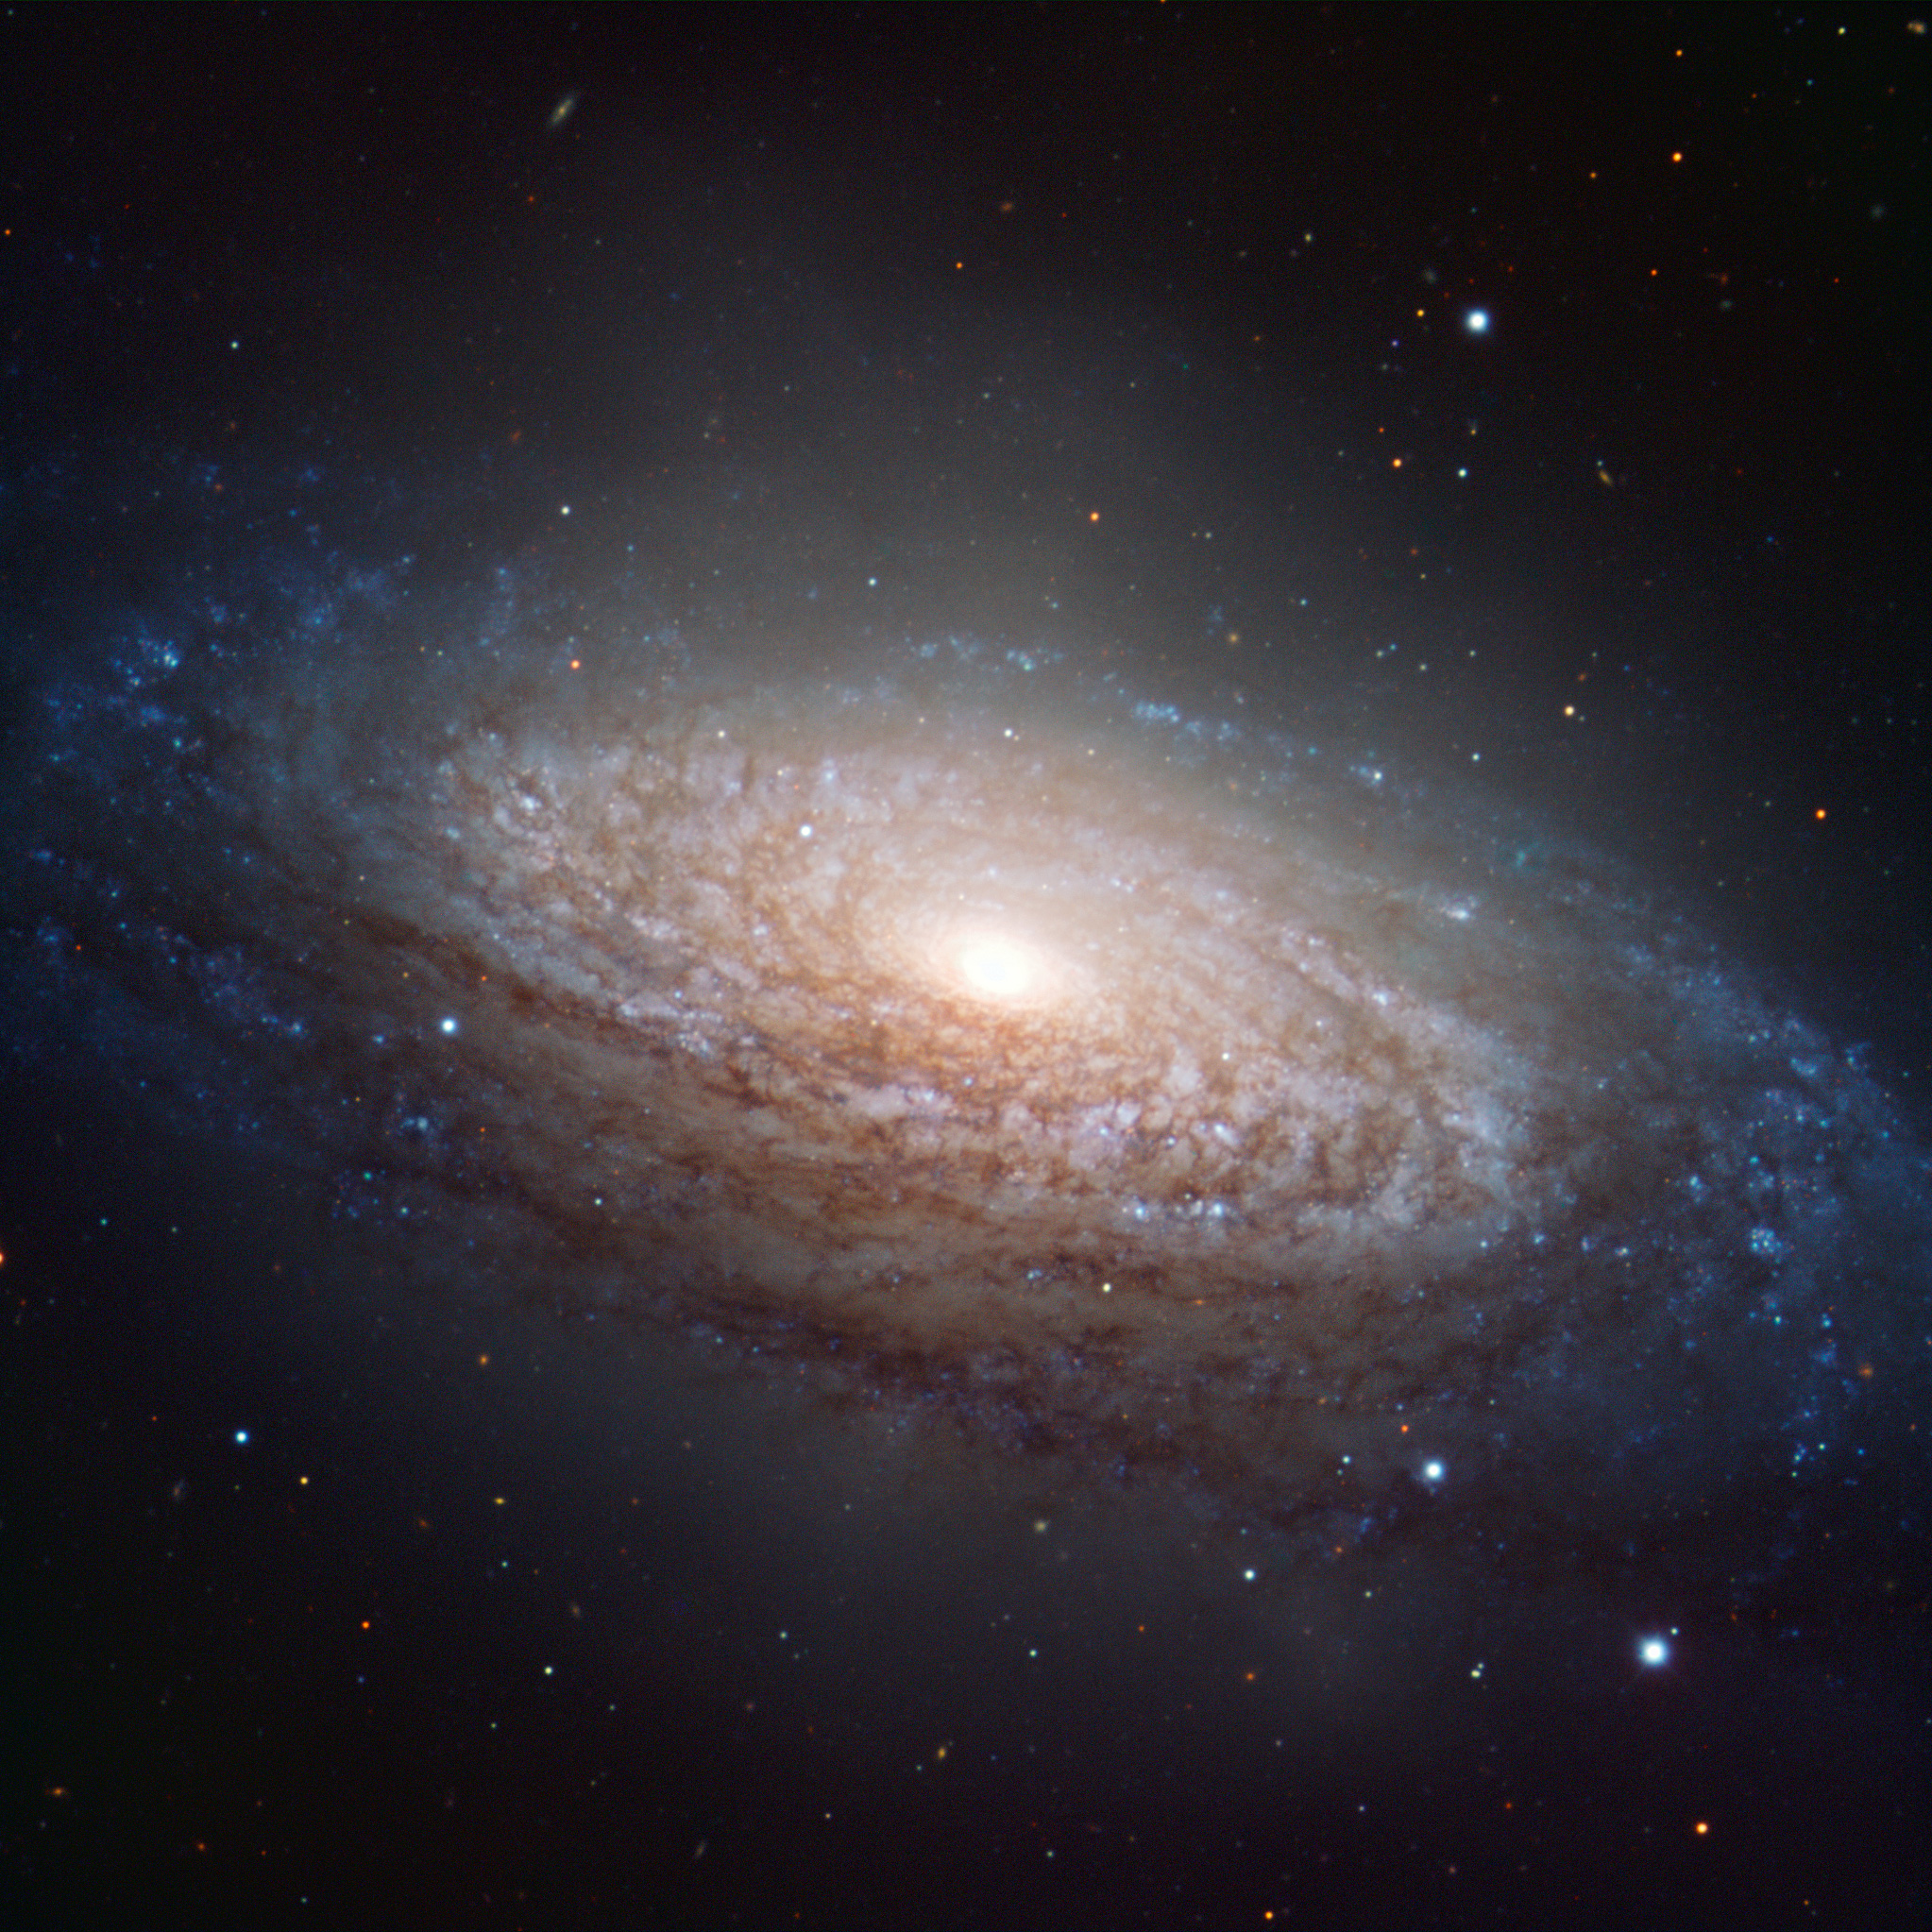 Spiral Galaxy NGC 3521 - Constellation of Leo